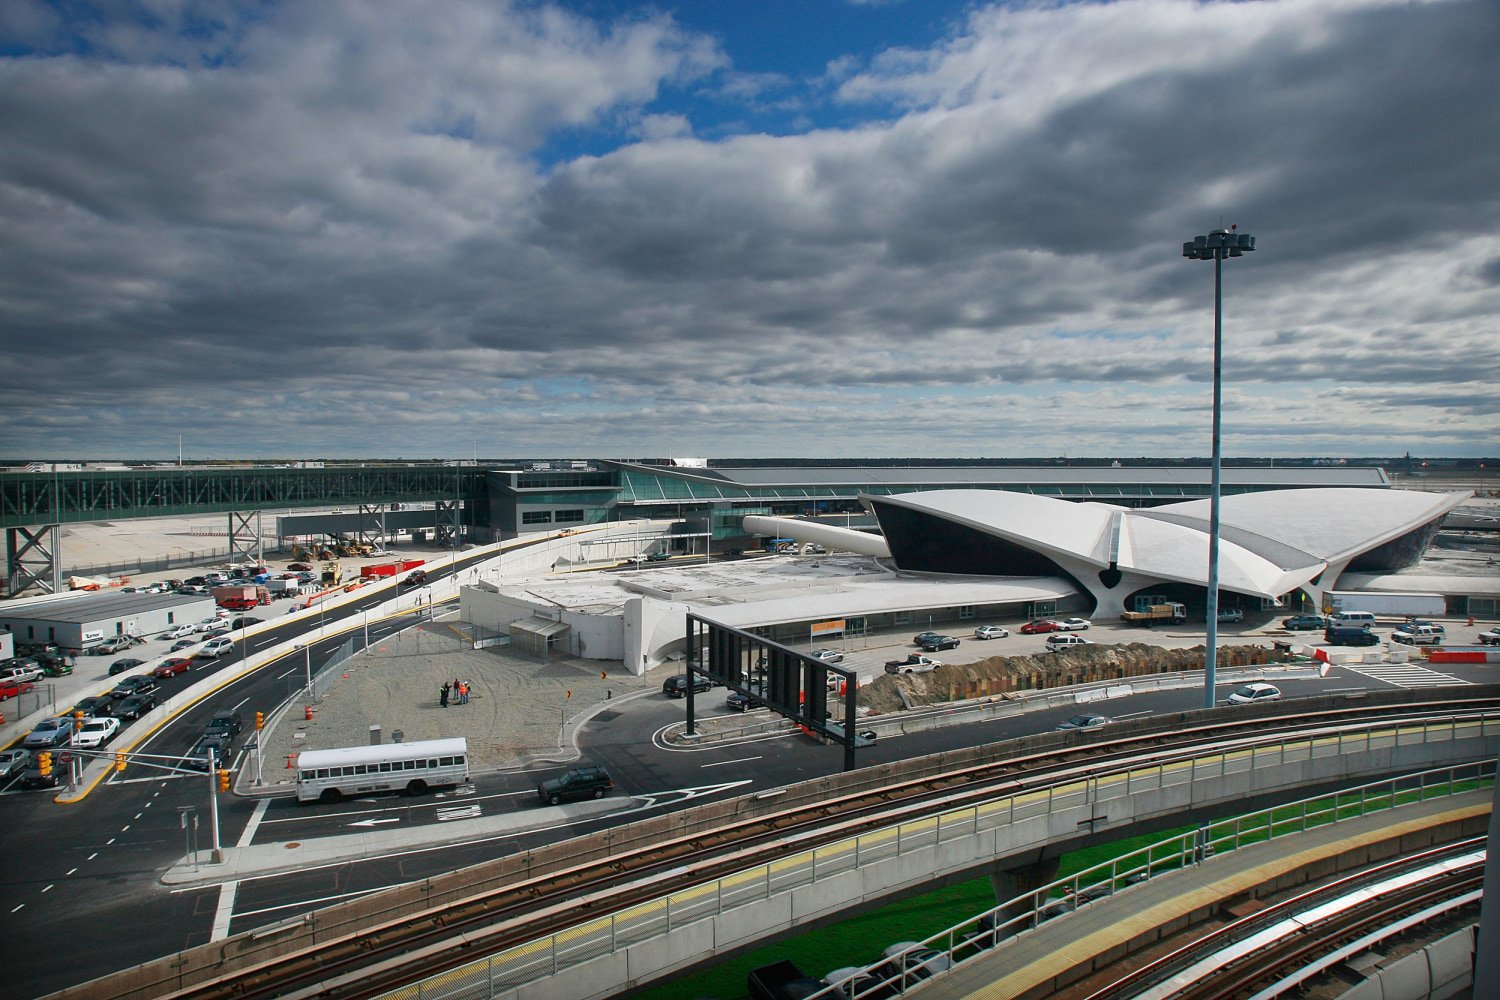 11 walk through unattended TSA checkpoint at JFK airport